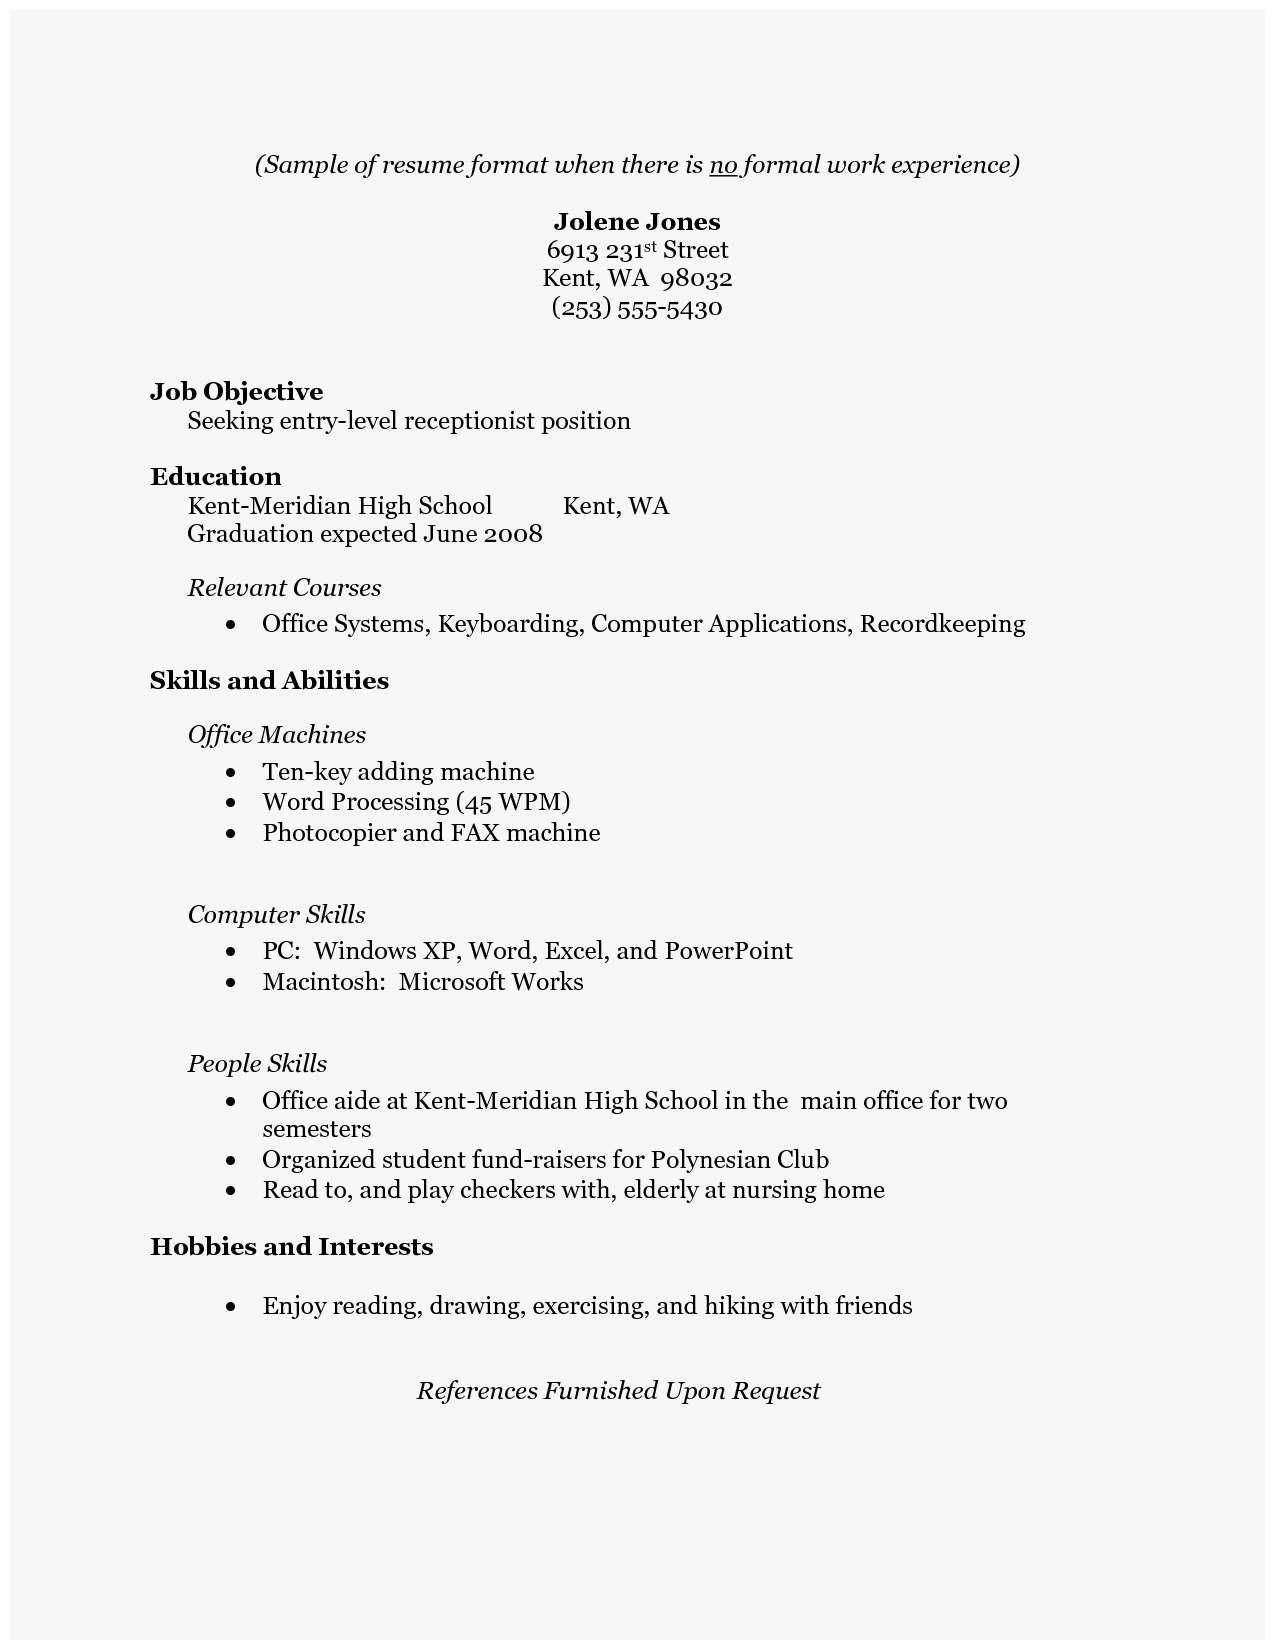 How To Write A Resume For A Job How To Write A Resume With No Job Experience New Pin Oleh Jobresume Di Resume Career Termplate Free Of How To Write A Resume With No Job Experience how to write a resume for a job wikiresume.com